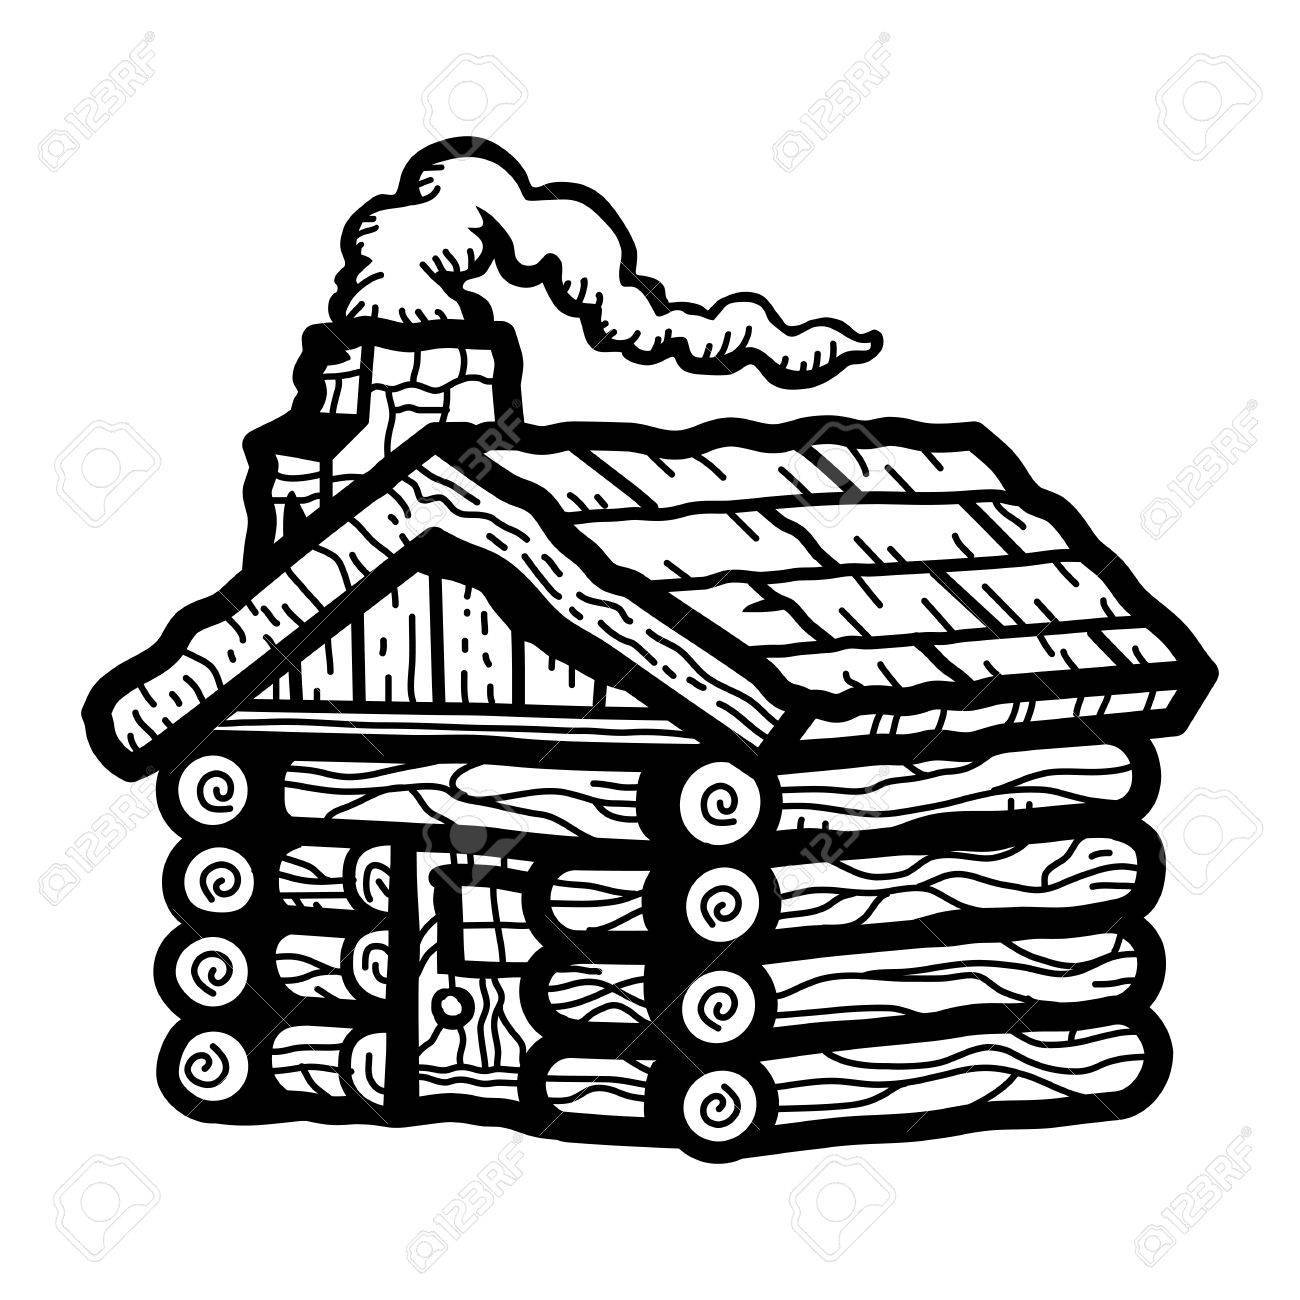 Log cabin clipart black and white 4 » Clipart Portal.